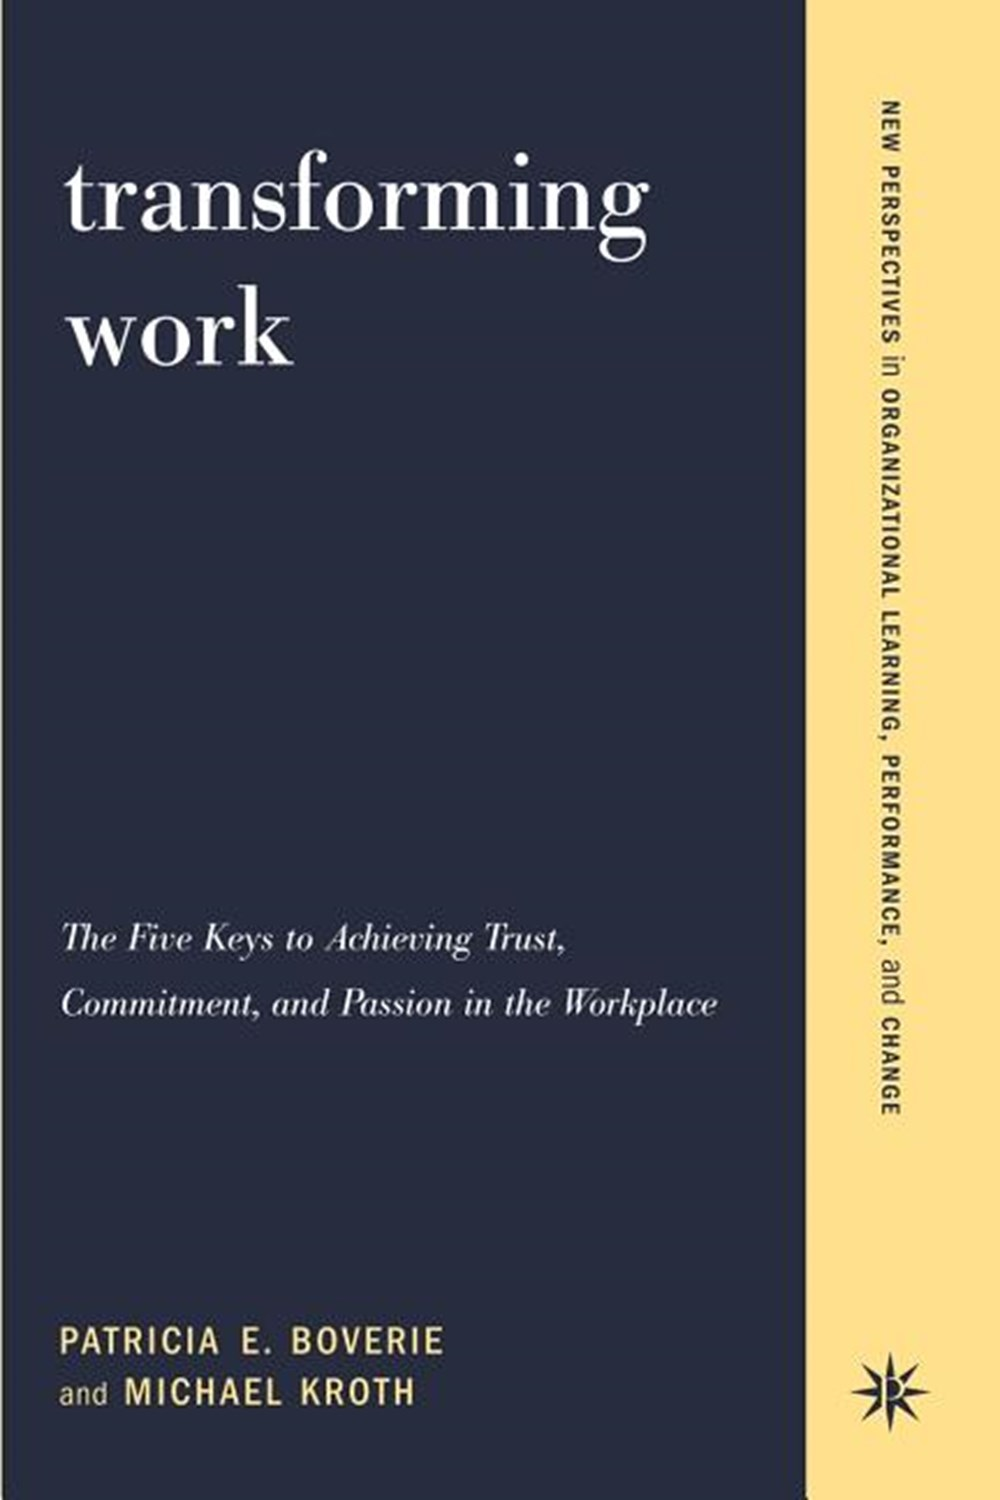 Transforming Work The Five Keys to Achieving Trust, Commitment, & Passion in the Workplace